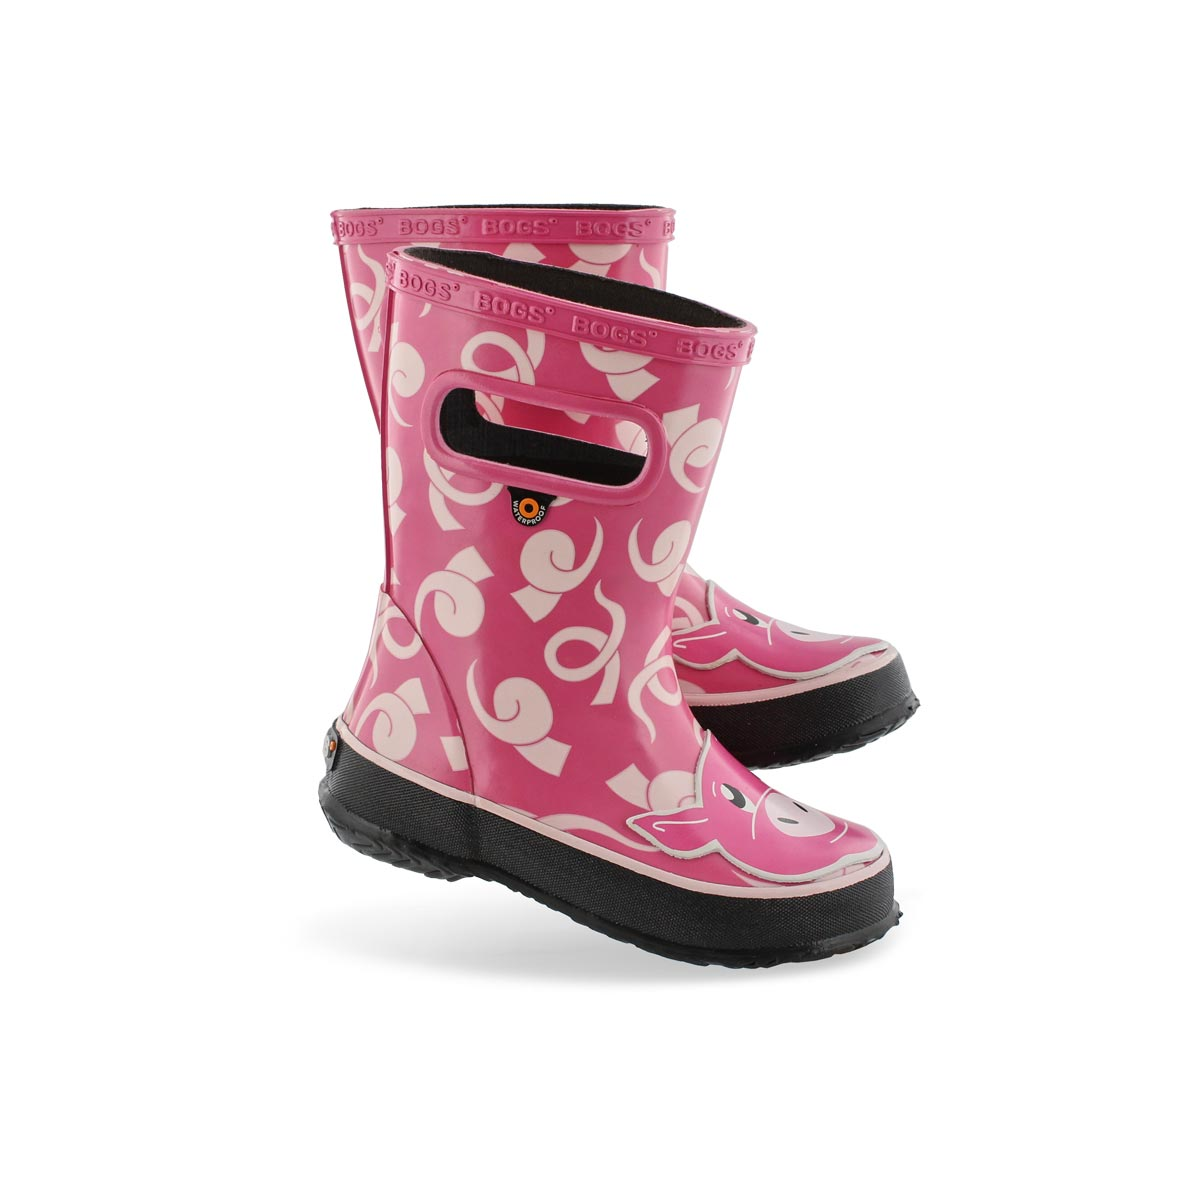 Inf-g Skipper Animals pig pnk mlti boot